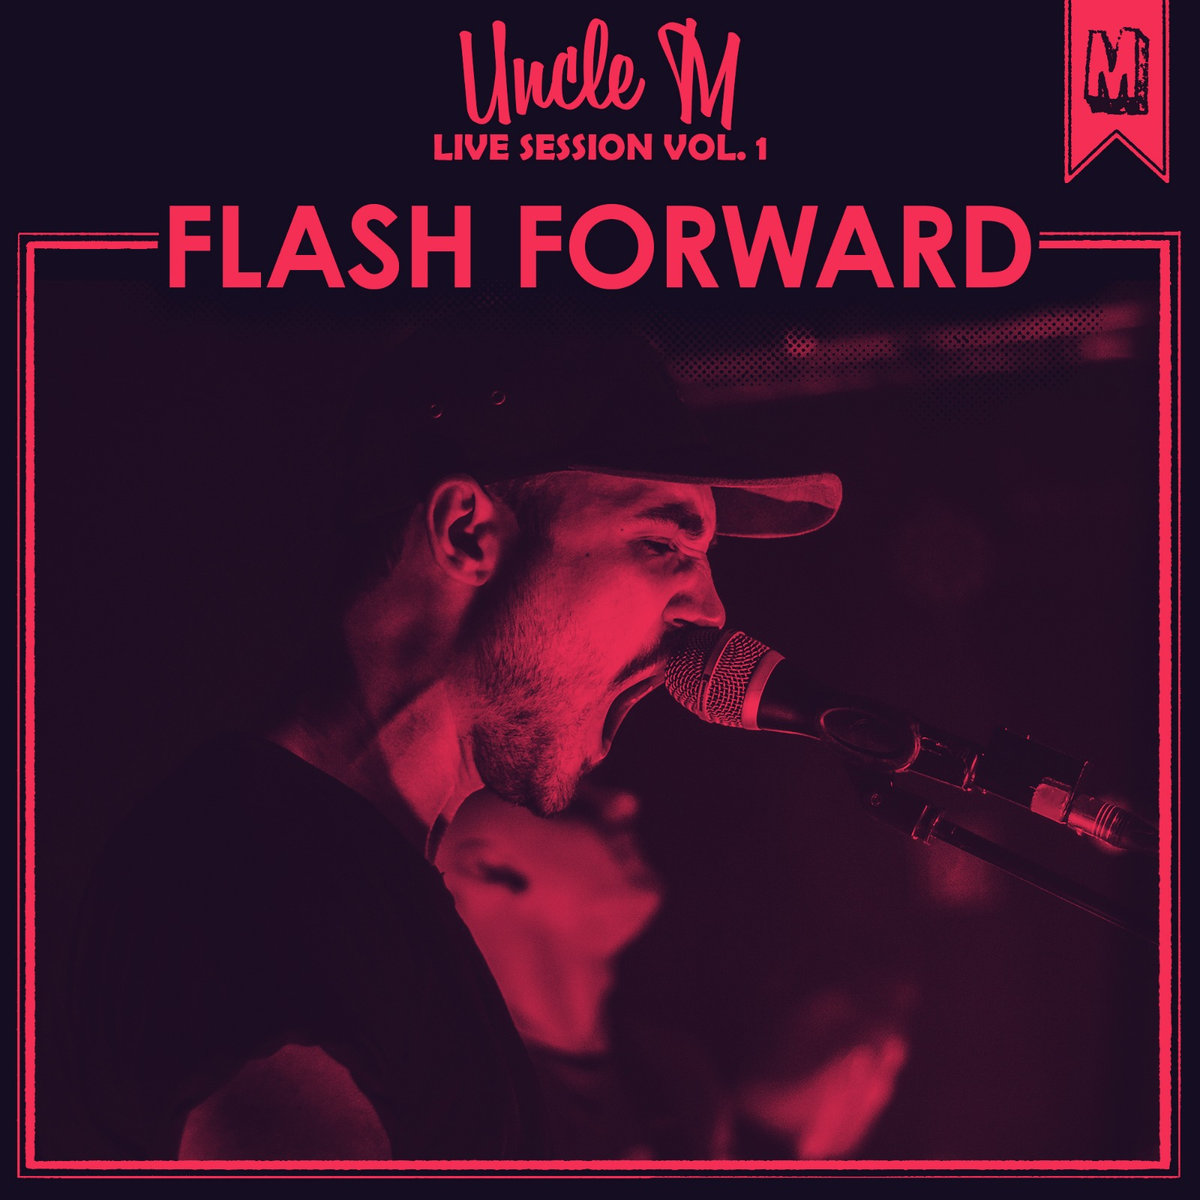 Flash Forward – Uncle M Live Session, Vol.1